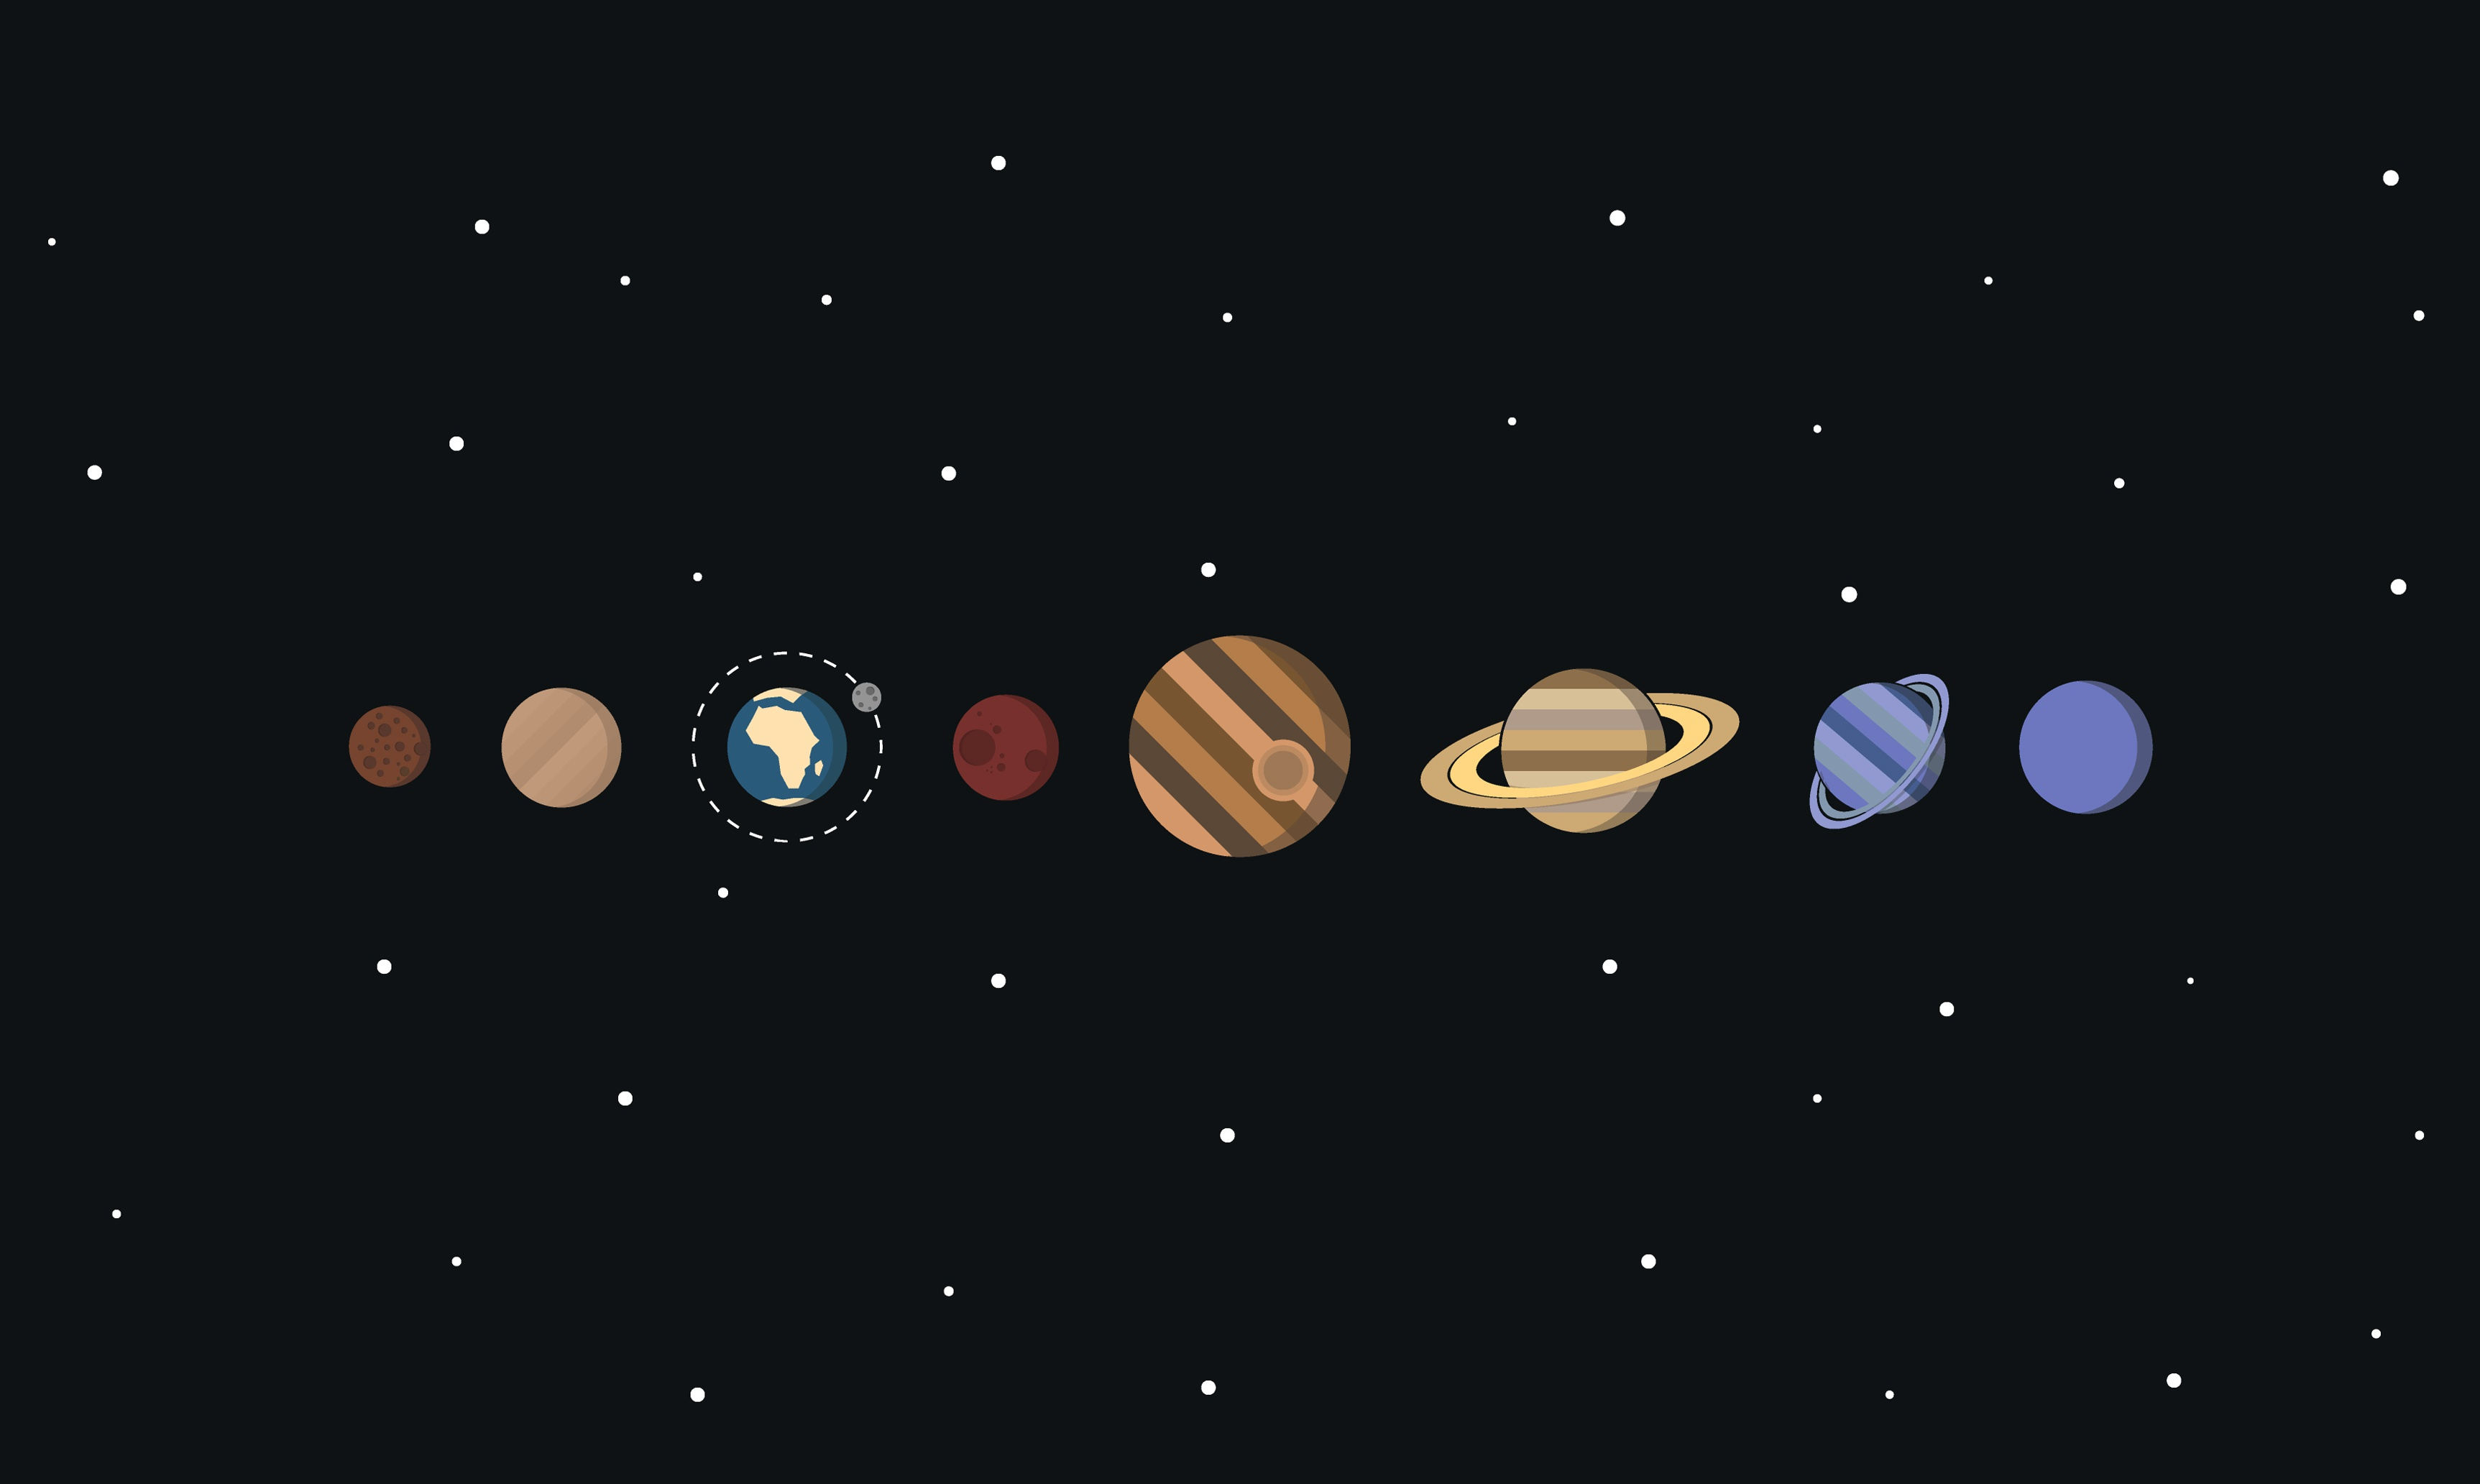 Solar system hd wallpaper background image 3450x2065 - Space solar system wallpaper ...